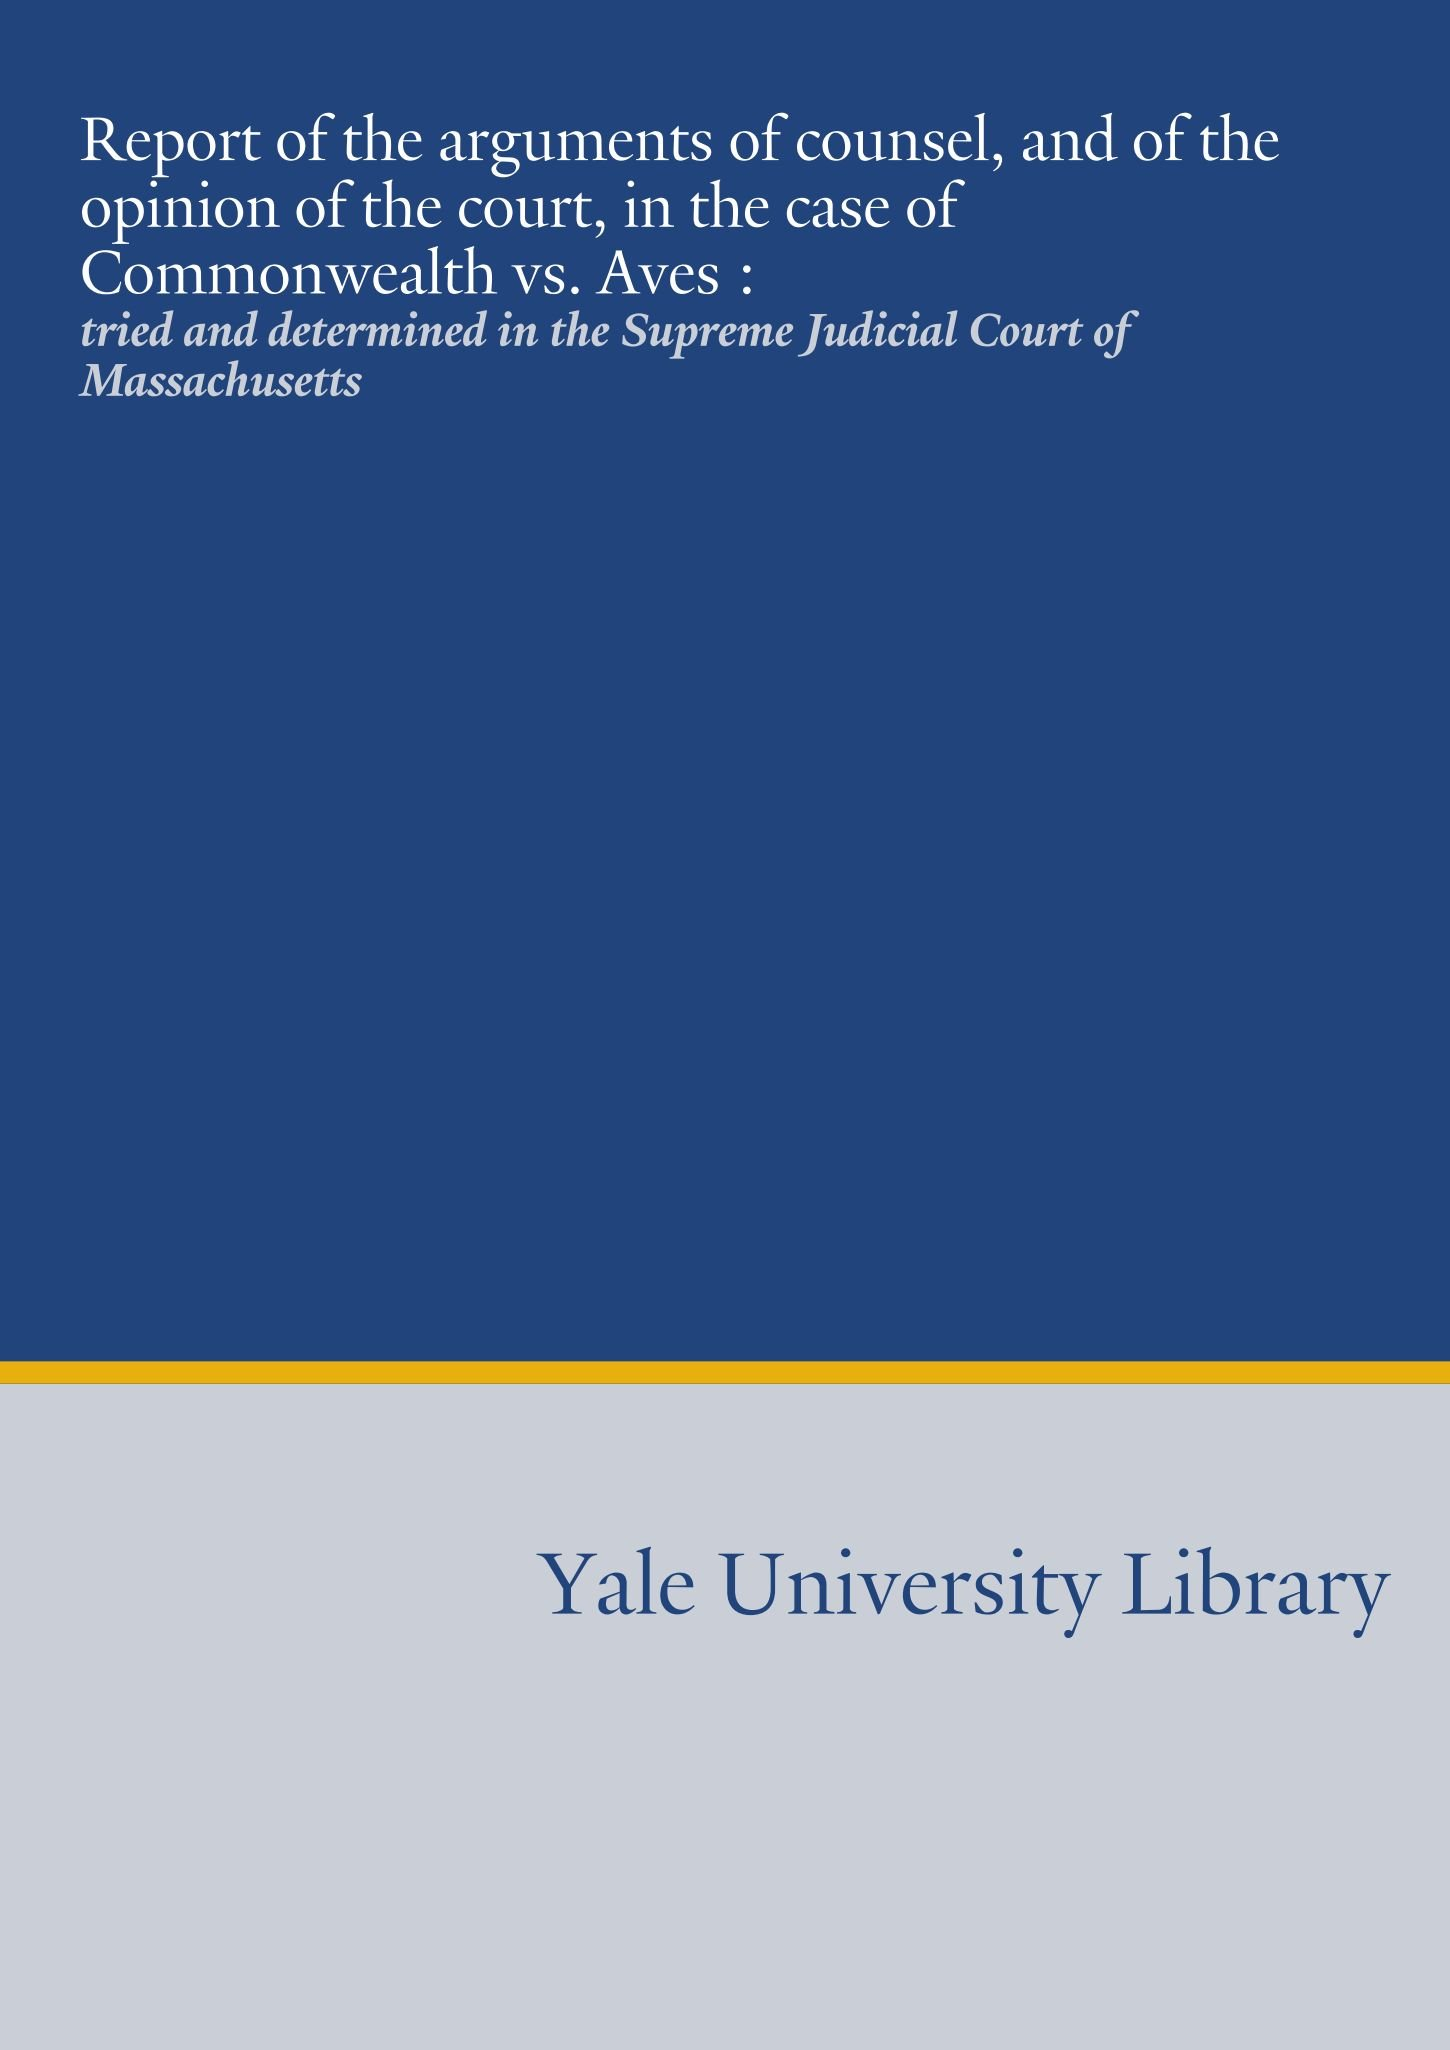 Report of the arguments of counsel, and of the opinion of the court, in the case of Commonwealth vs. Aves :: tried and determined in the Supreme Judicial Court of Massachusetts pdf epub